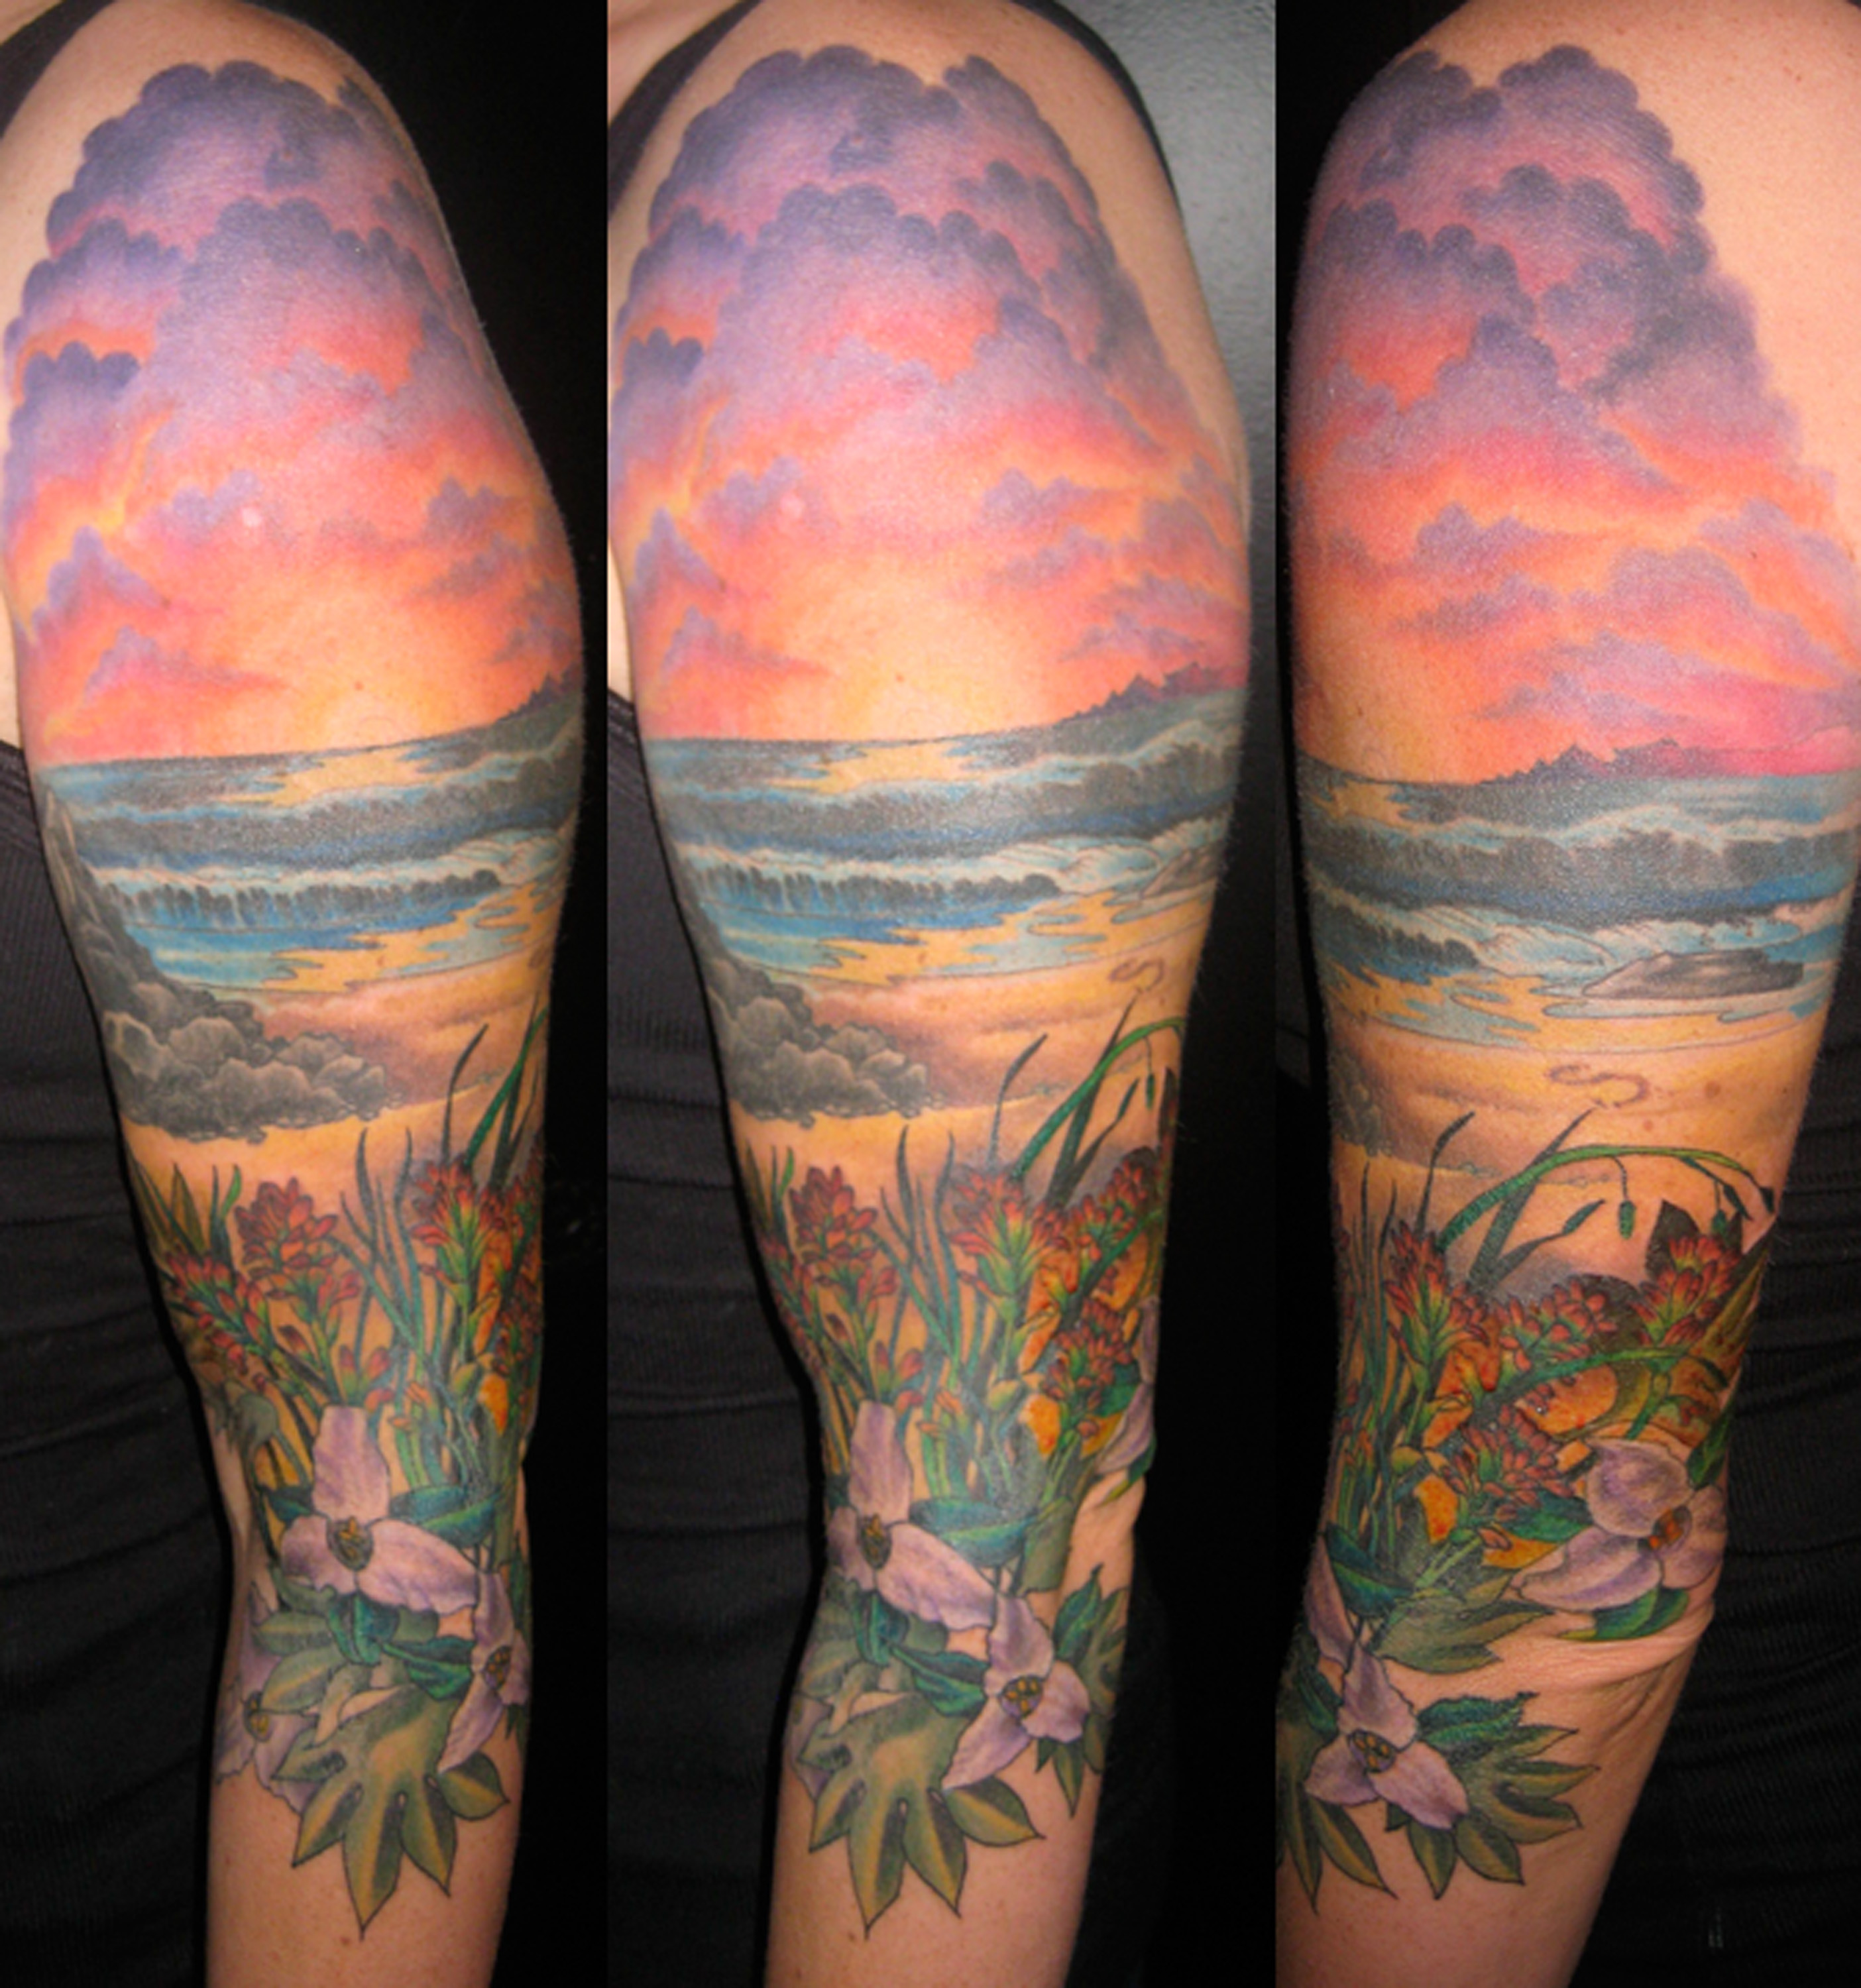 Sunset on the beach tattoo tattoomagz for Beach sunset tattoos